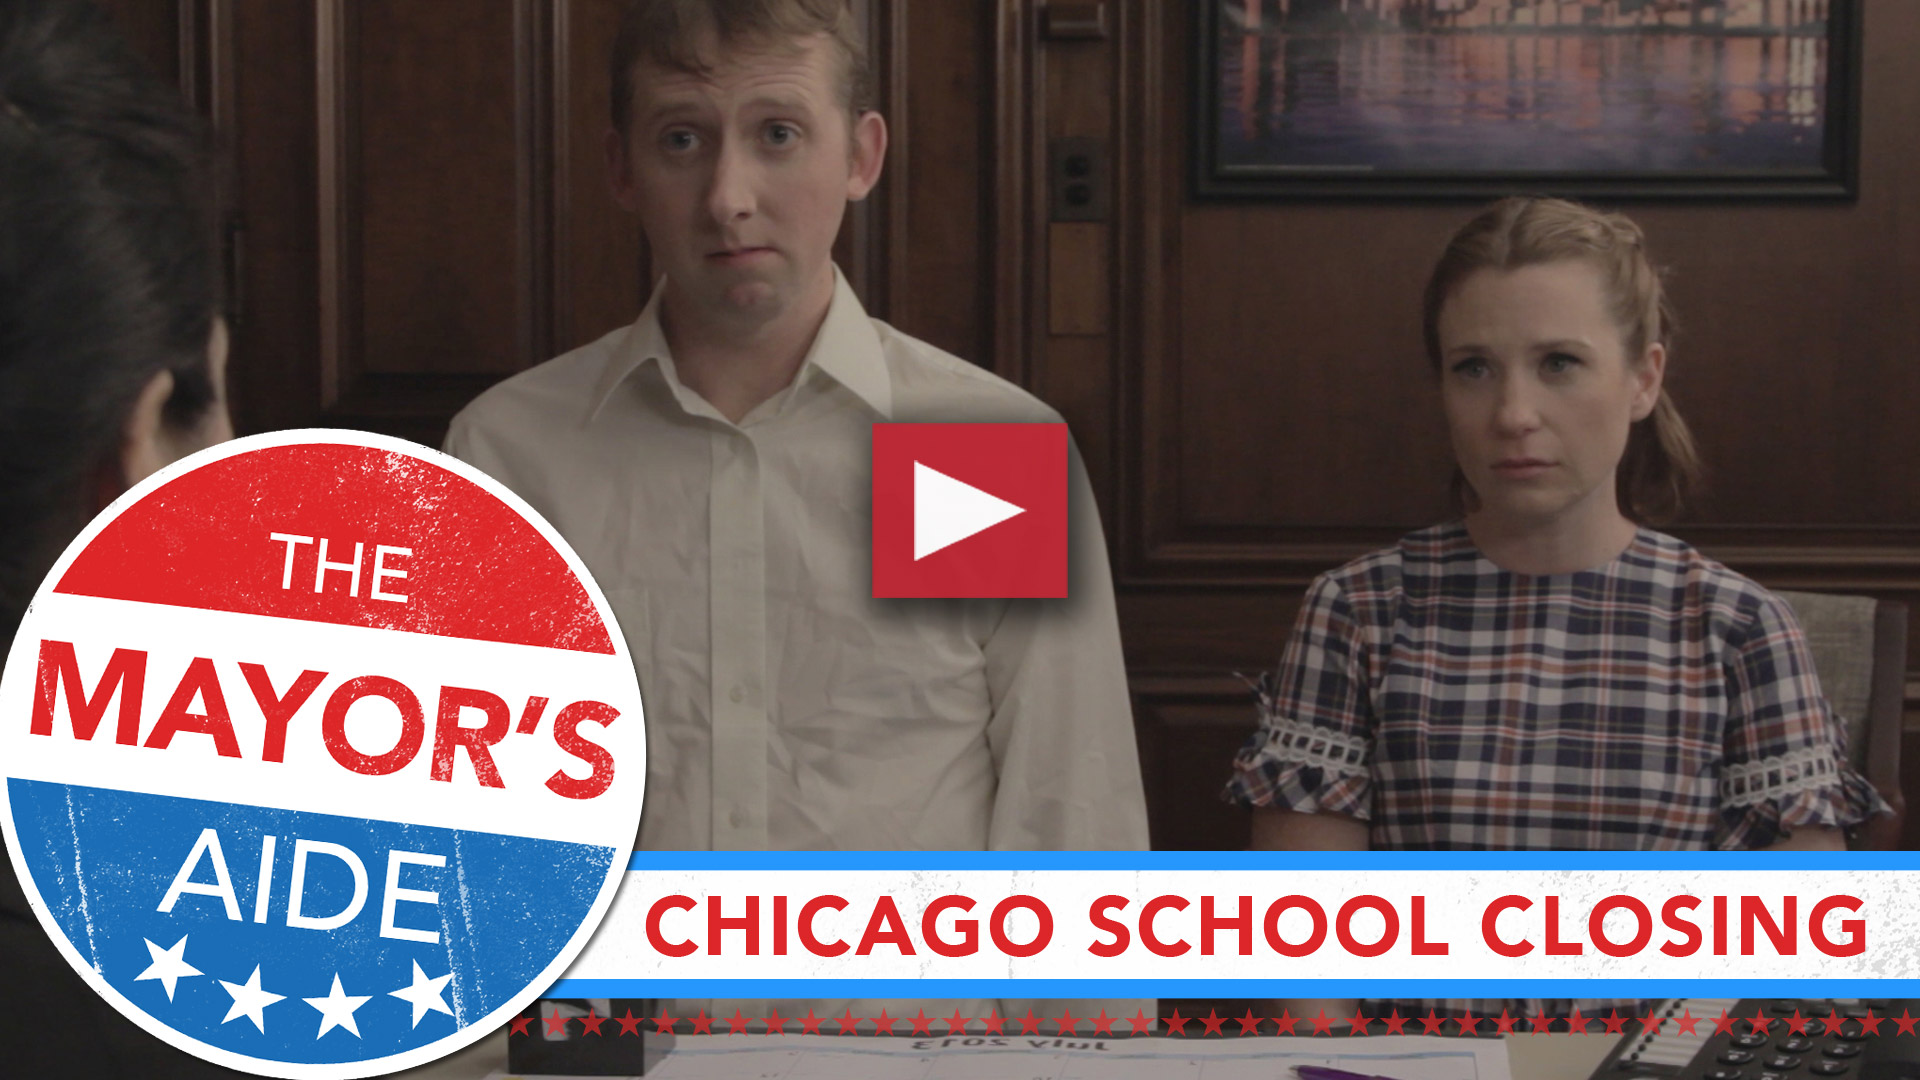 The Mayor's Aide – Chicago School Closings